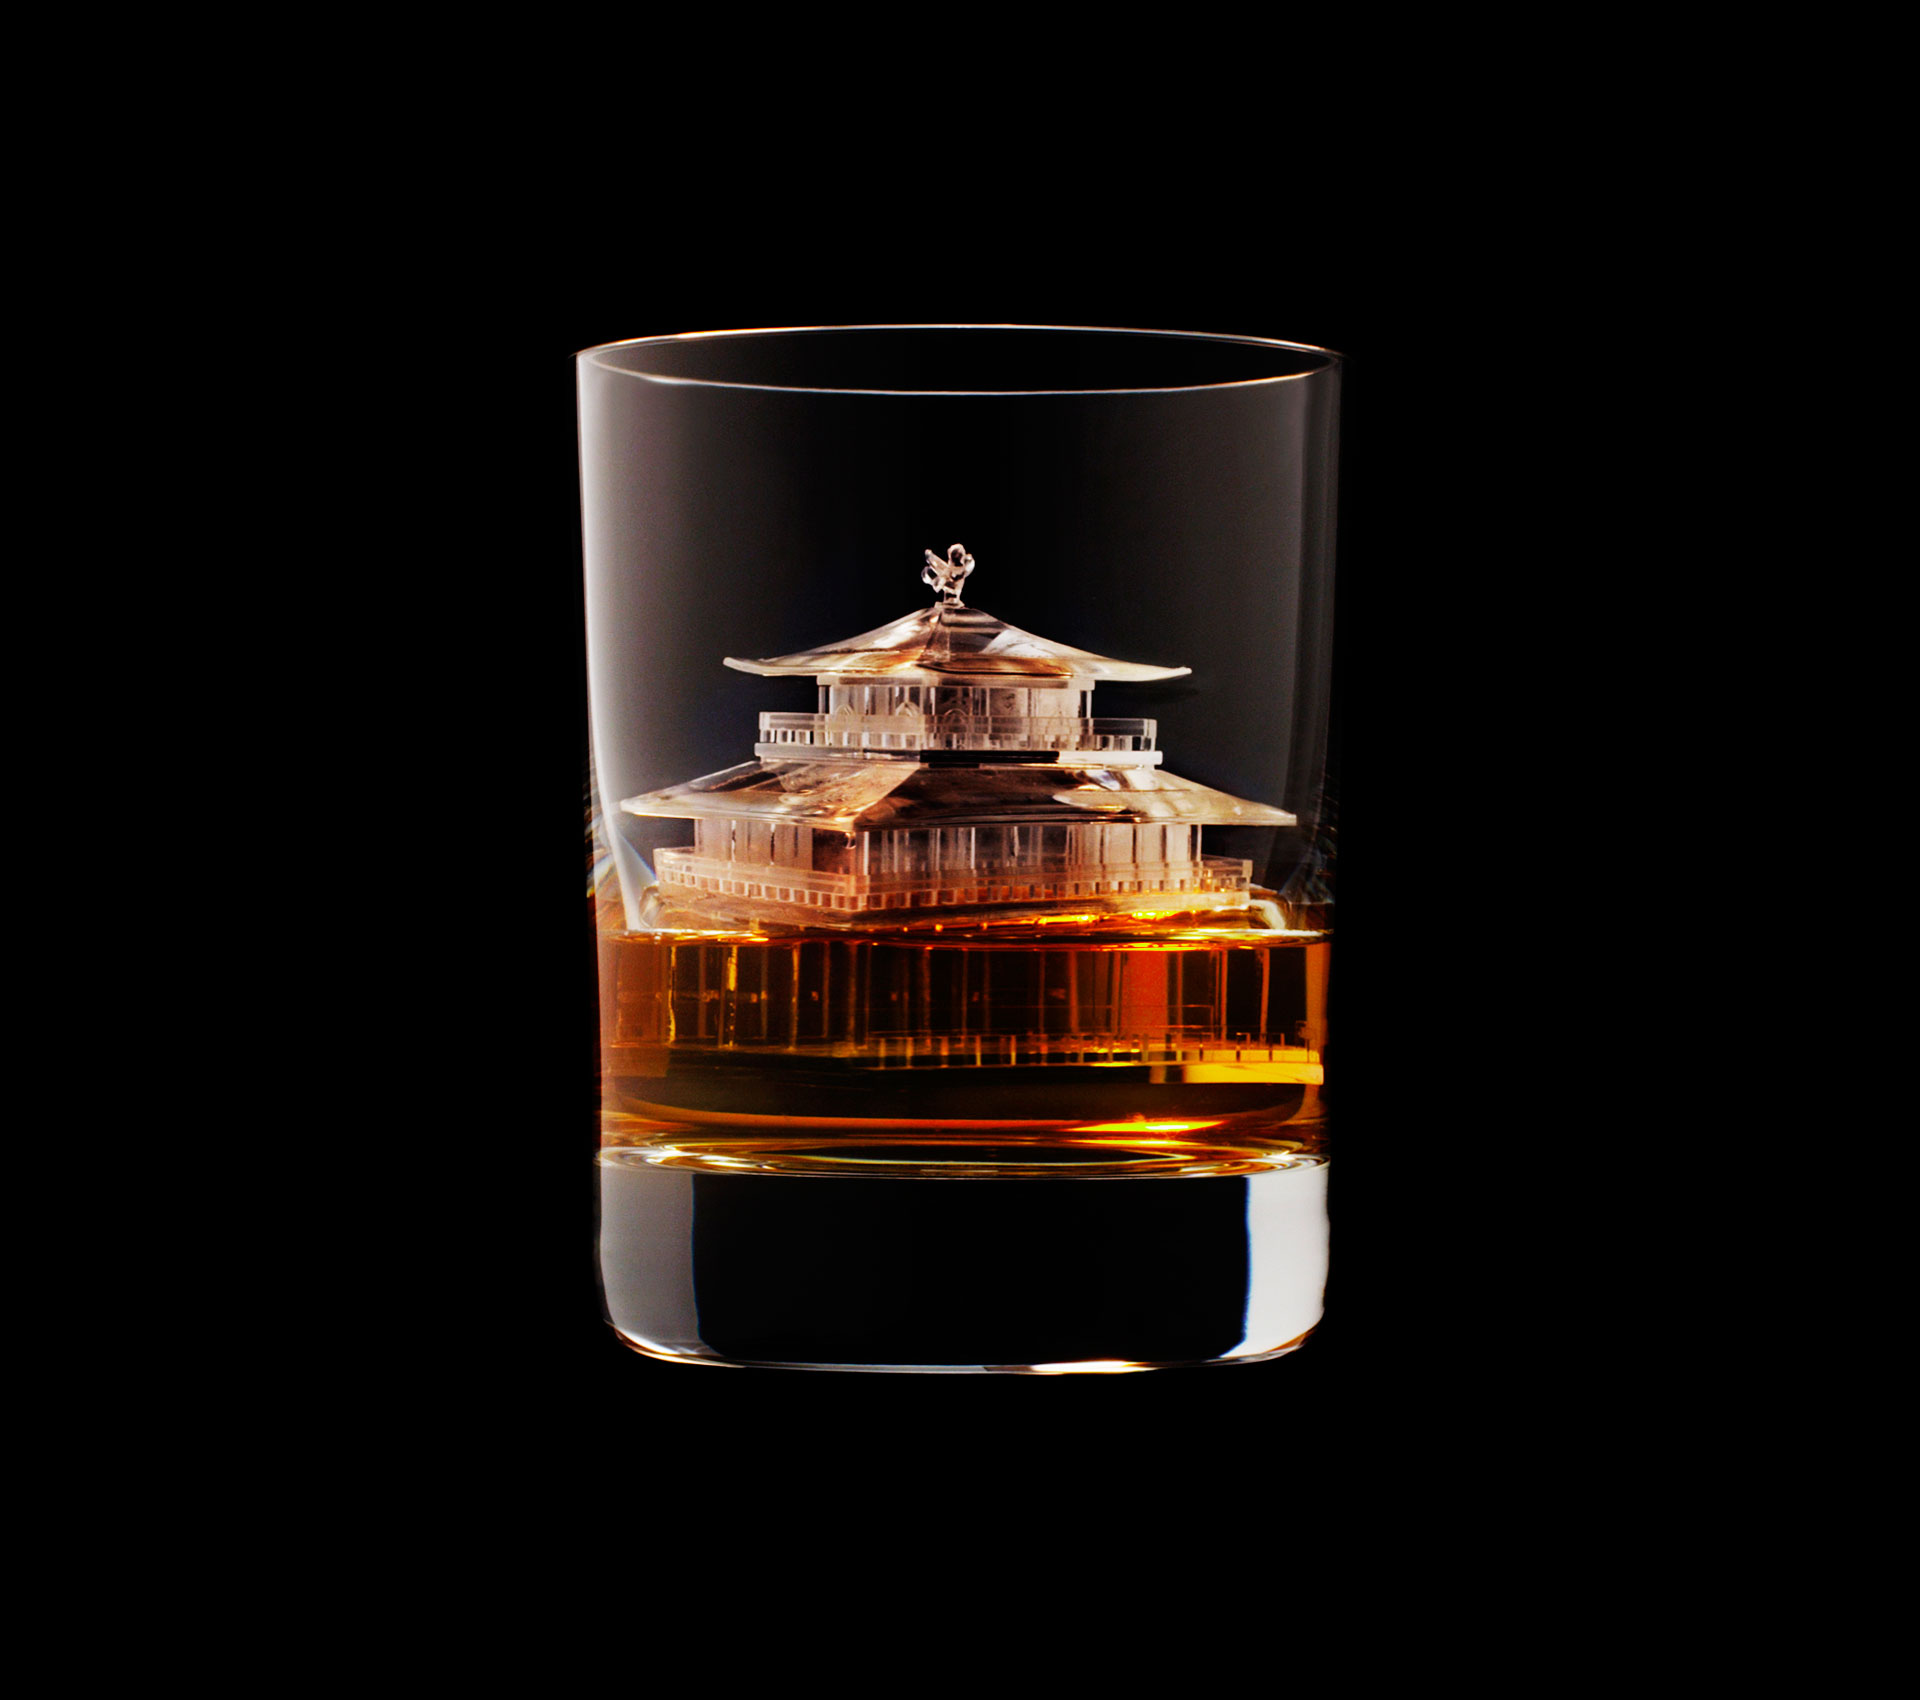 Suntory Whisky Carved The World S Most Incredible Ice